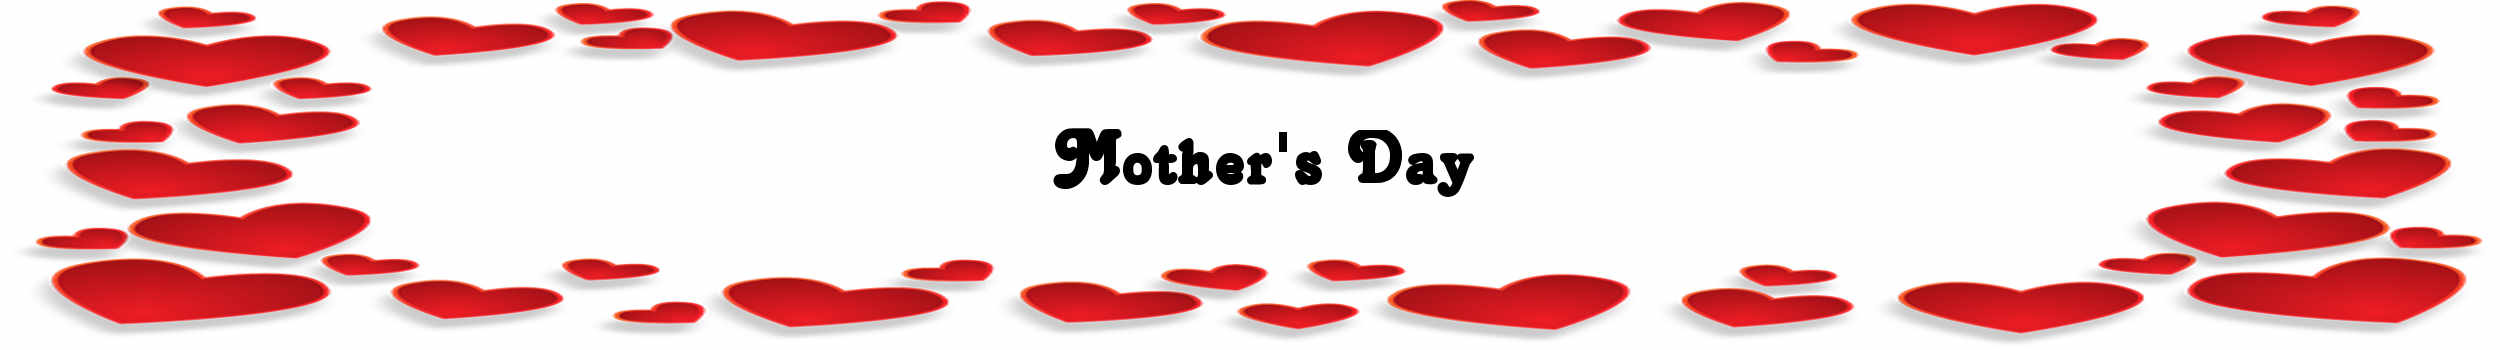 Mothers Day Occasion Banner